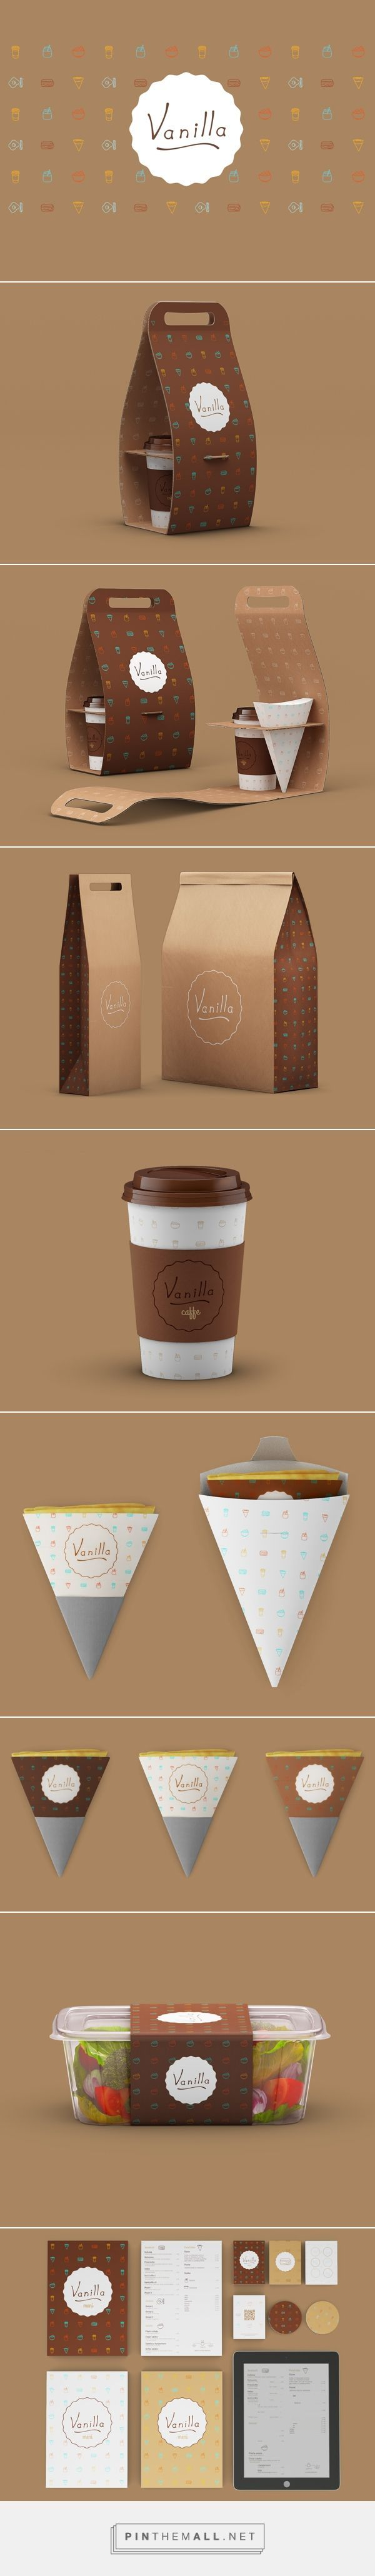 Vanilla identity packaging branding on Behance by Mario Dragic curated by Packaging Diva PD. A small food takeaway cafe where you can get great pancakes, sandwiches and salads. 2015 top team packaging pin.